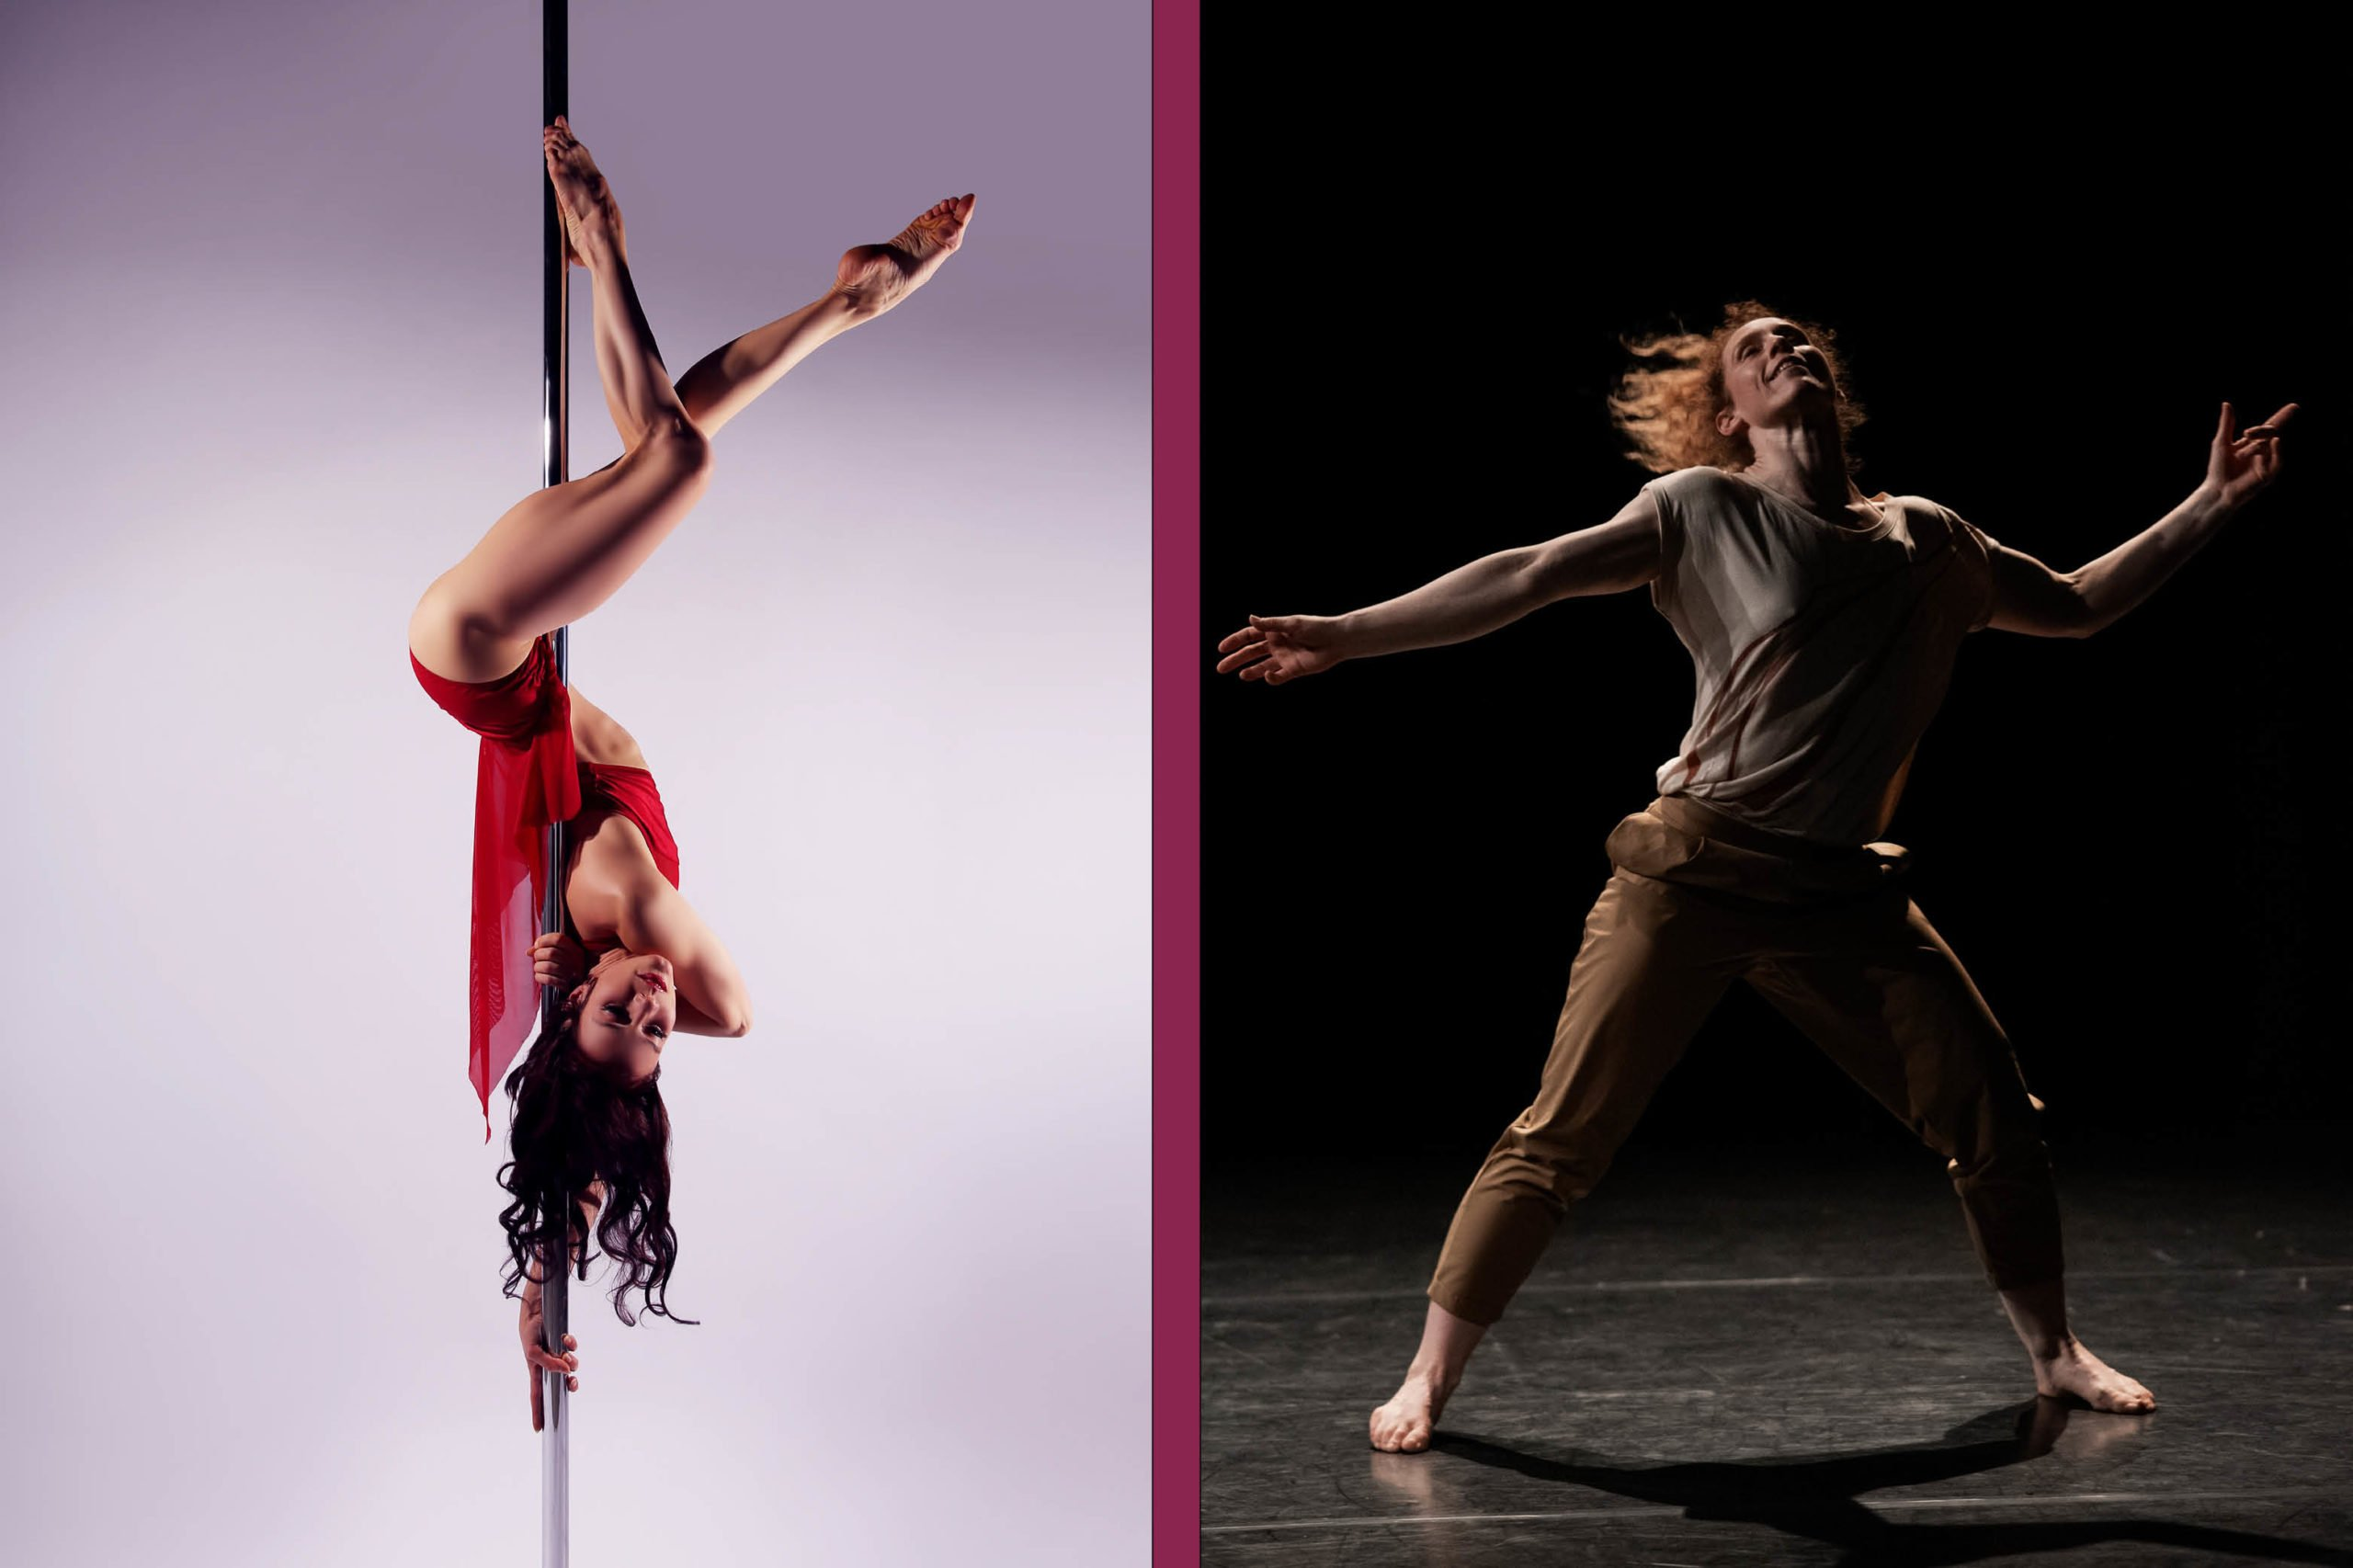 An evening of physical performance with Kristin McGuire and Nikki Rummer